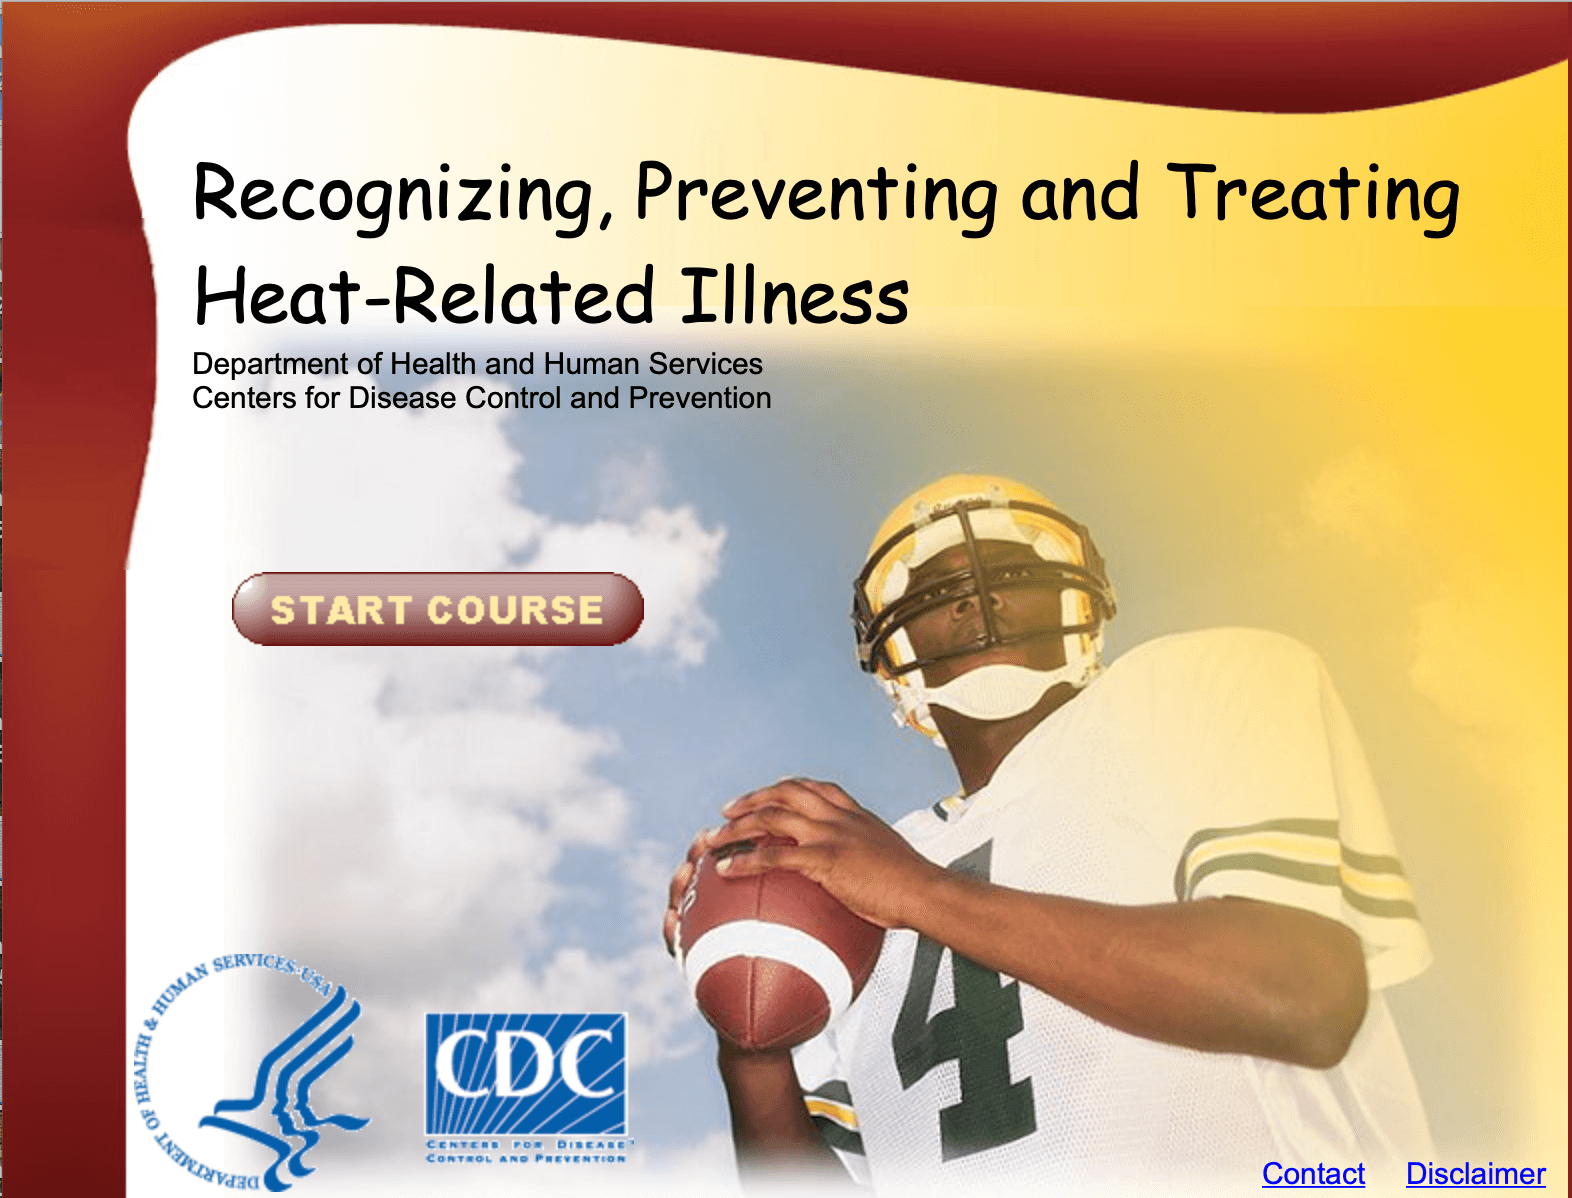 Recognizing, Preventing and Treating Heat-Related Illness